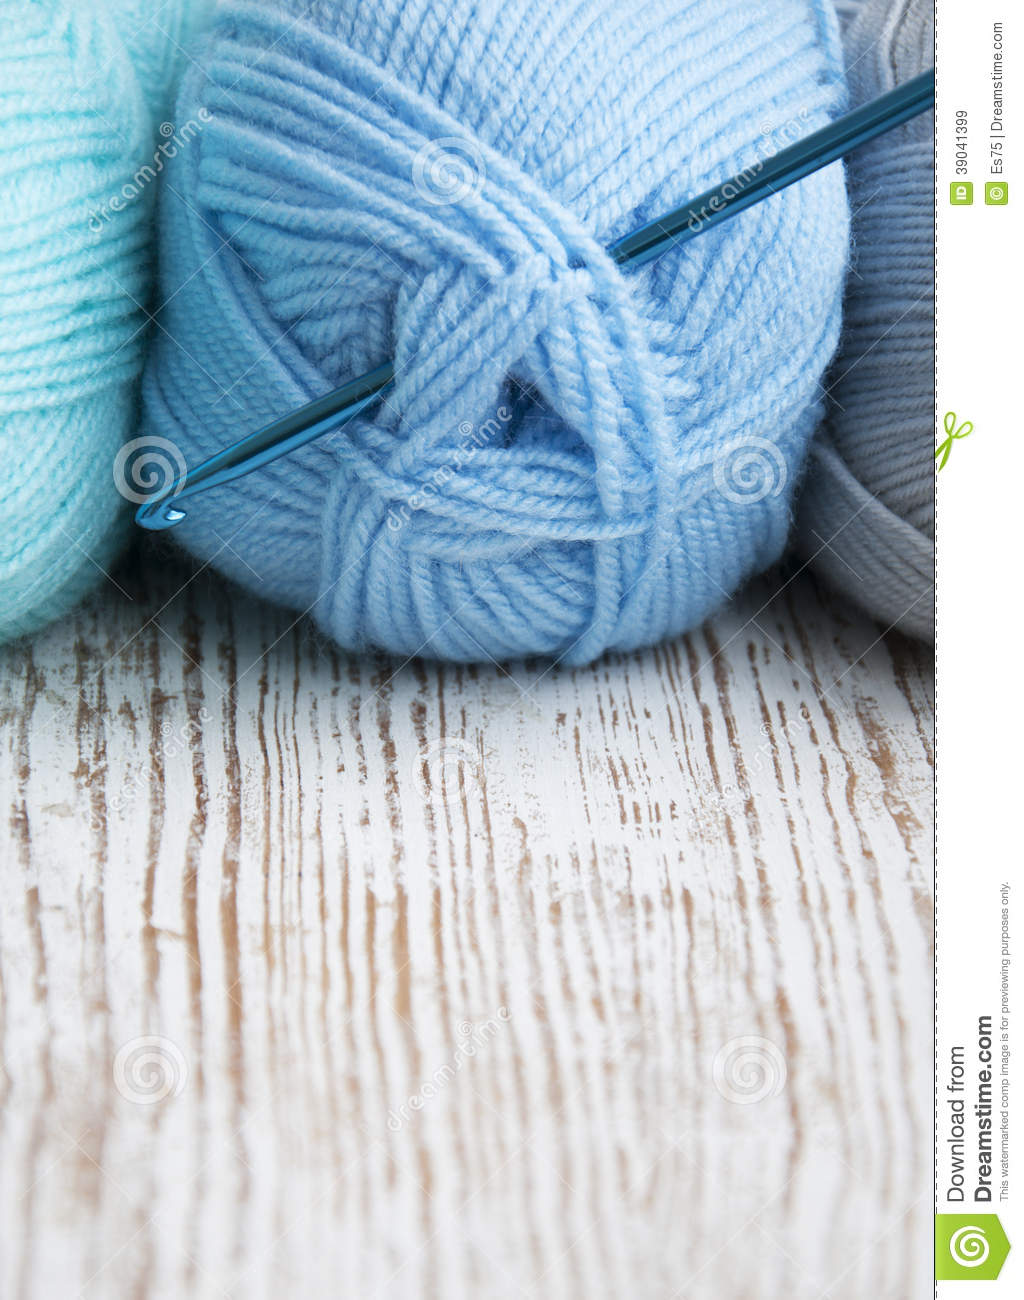 Crochet Knitting Yarn : Crochet Hook And Knitting Yarn Stock Photo - Image: 39041399